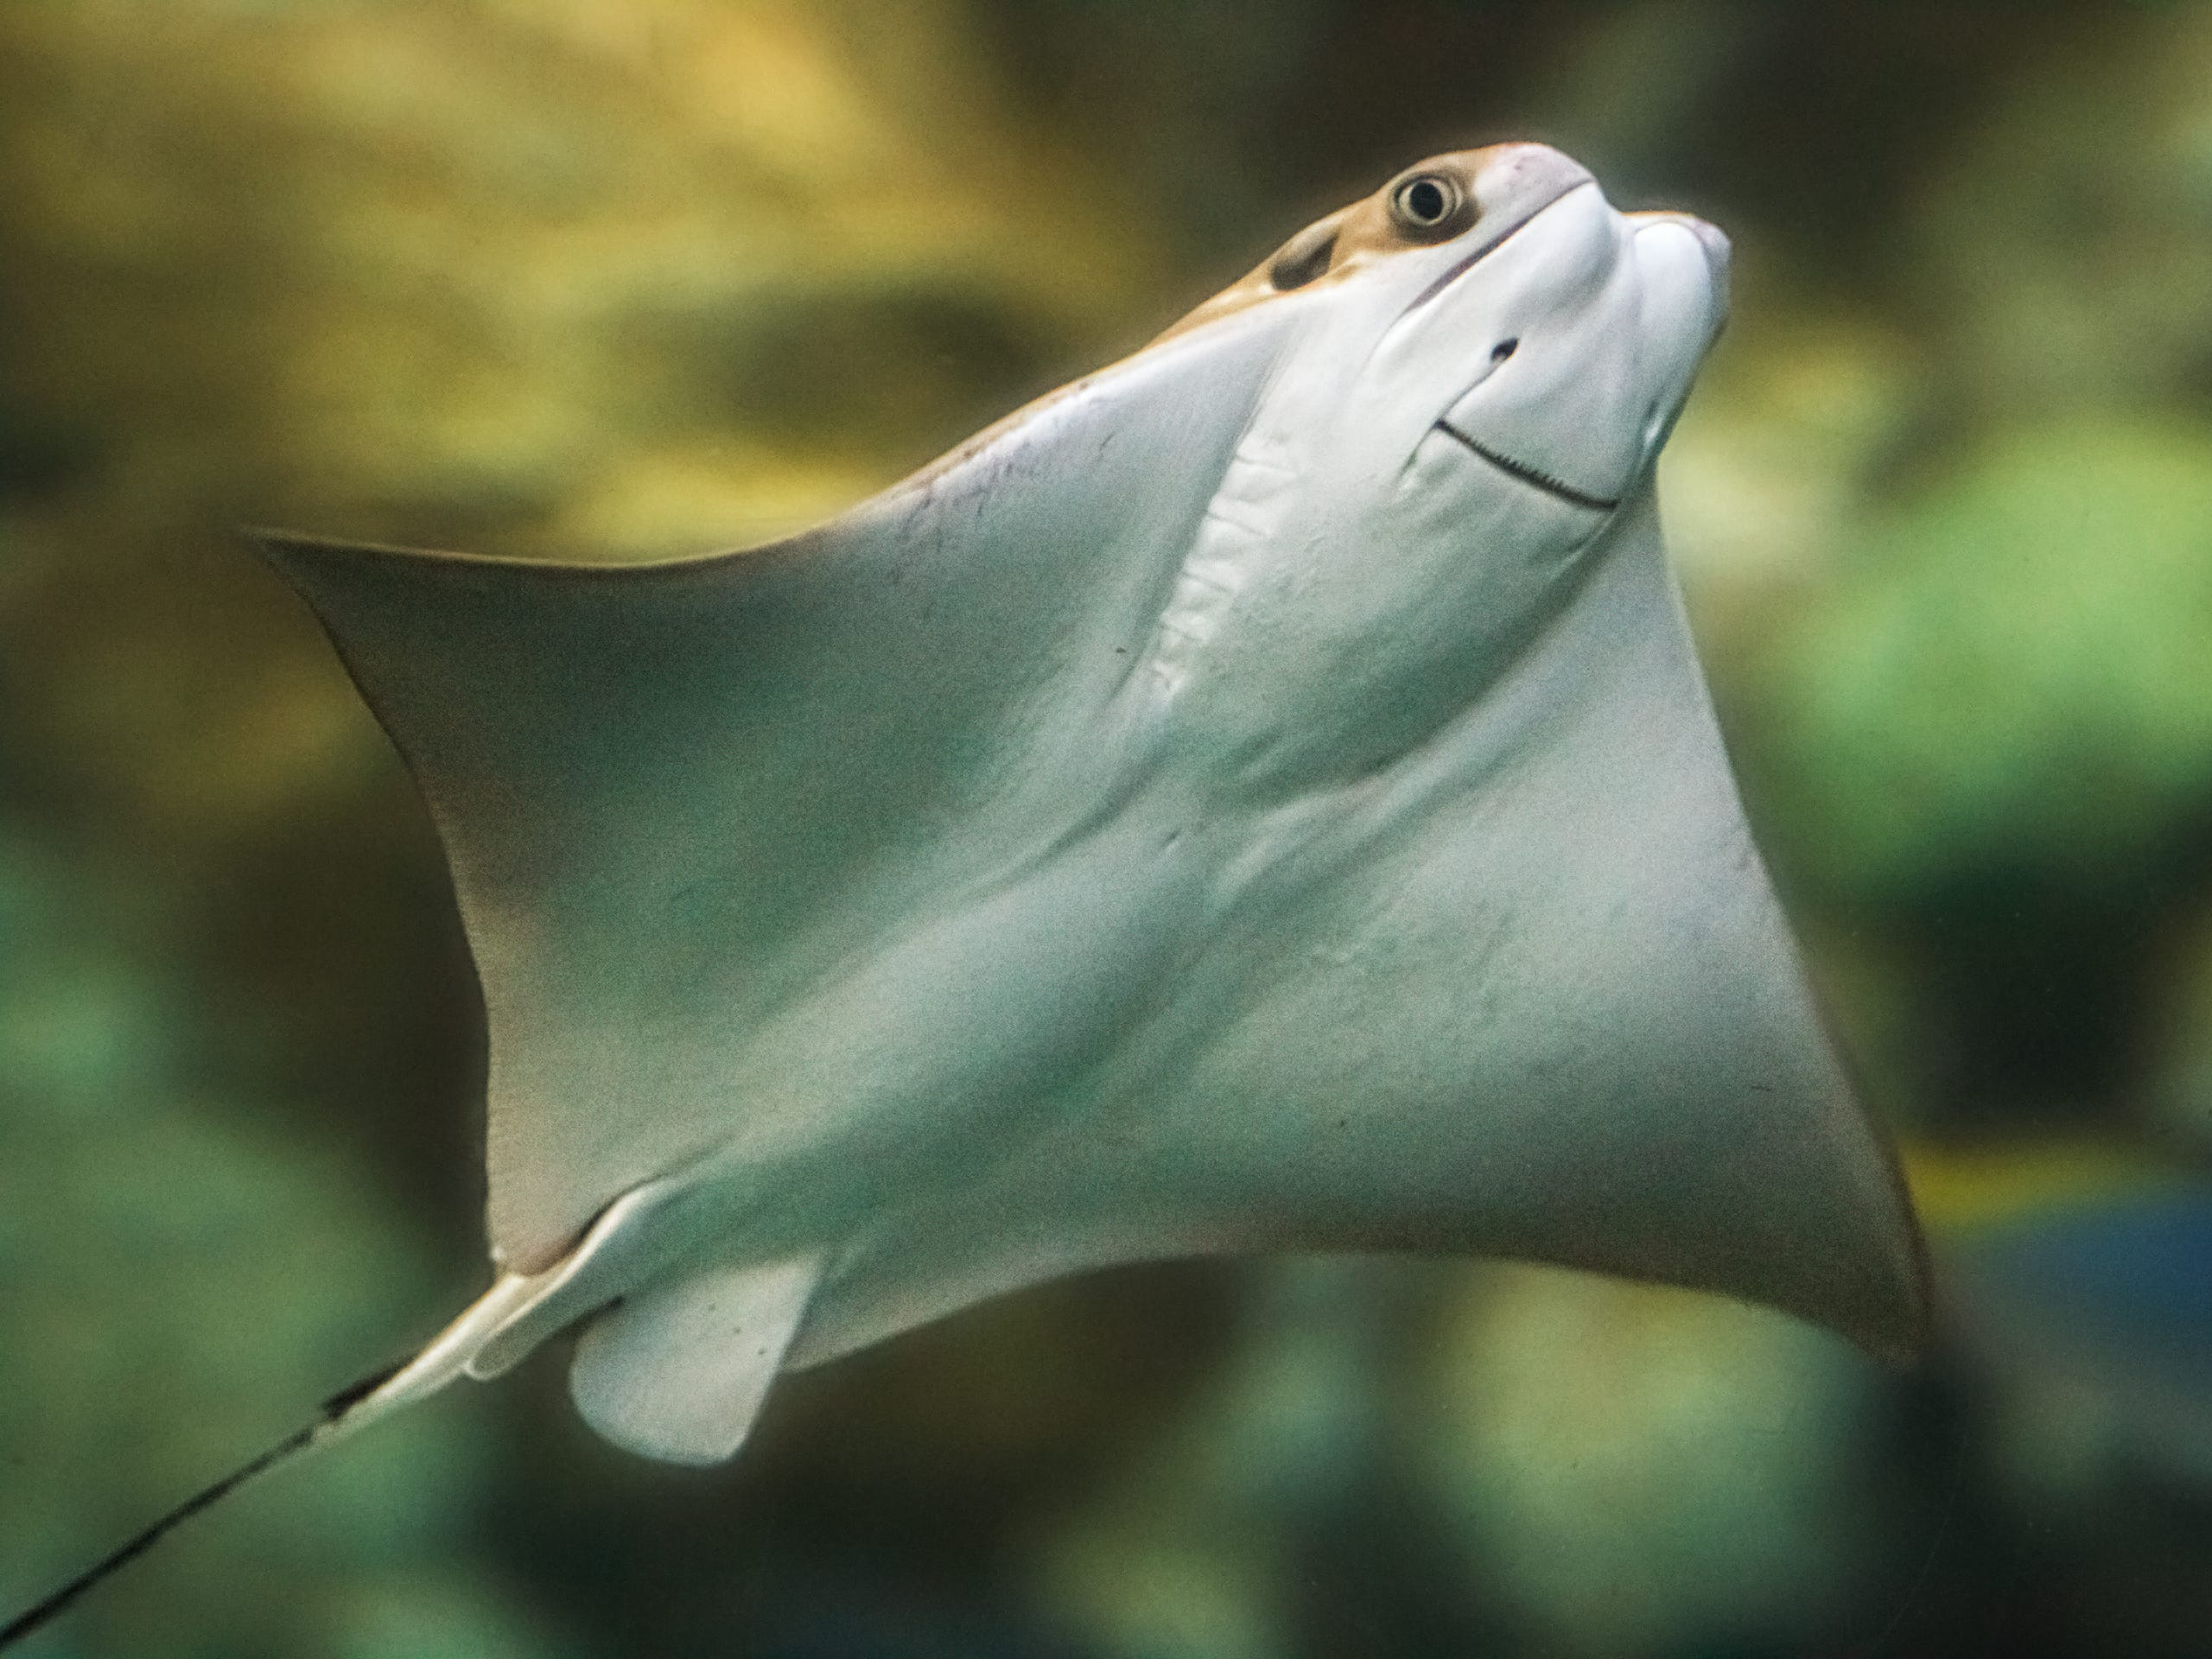 Smiling for the camera, this cownose ray was born in March at the Aquarium of the Pacific in Long Beach, California.